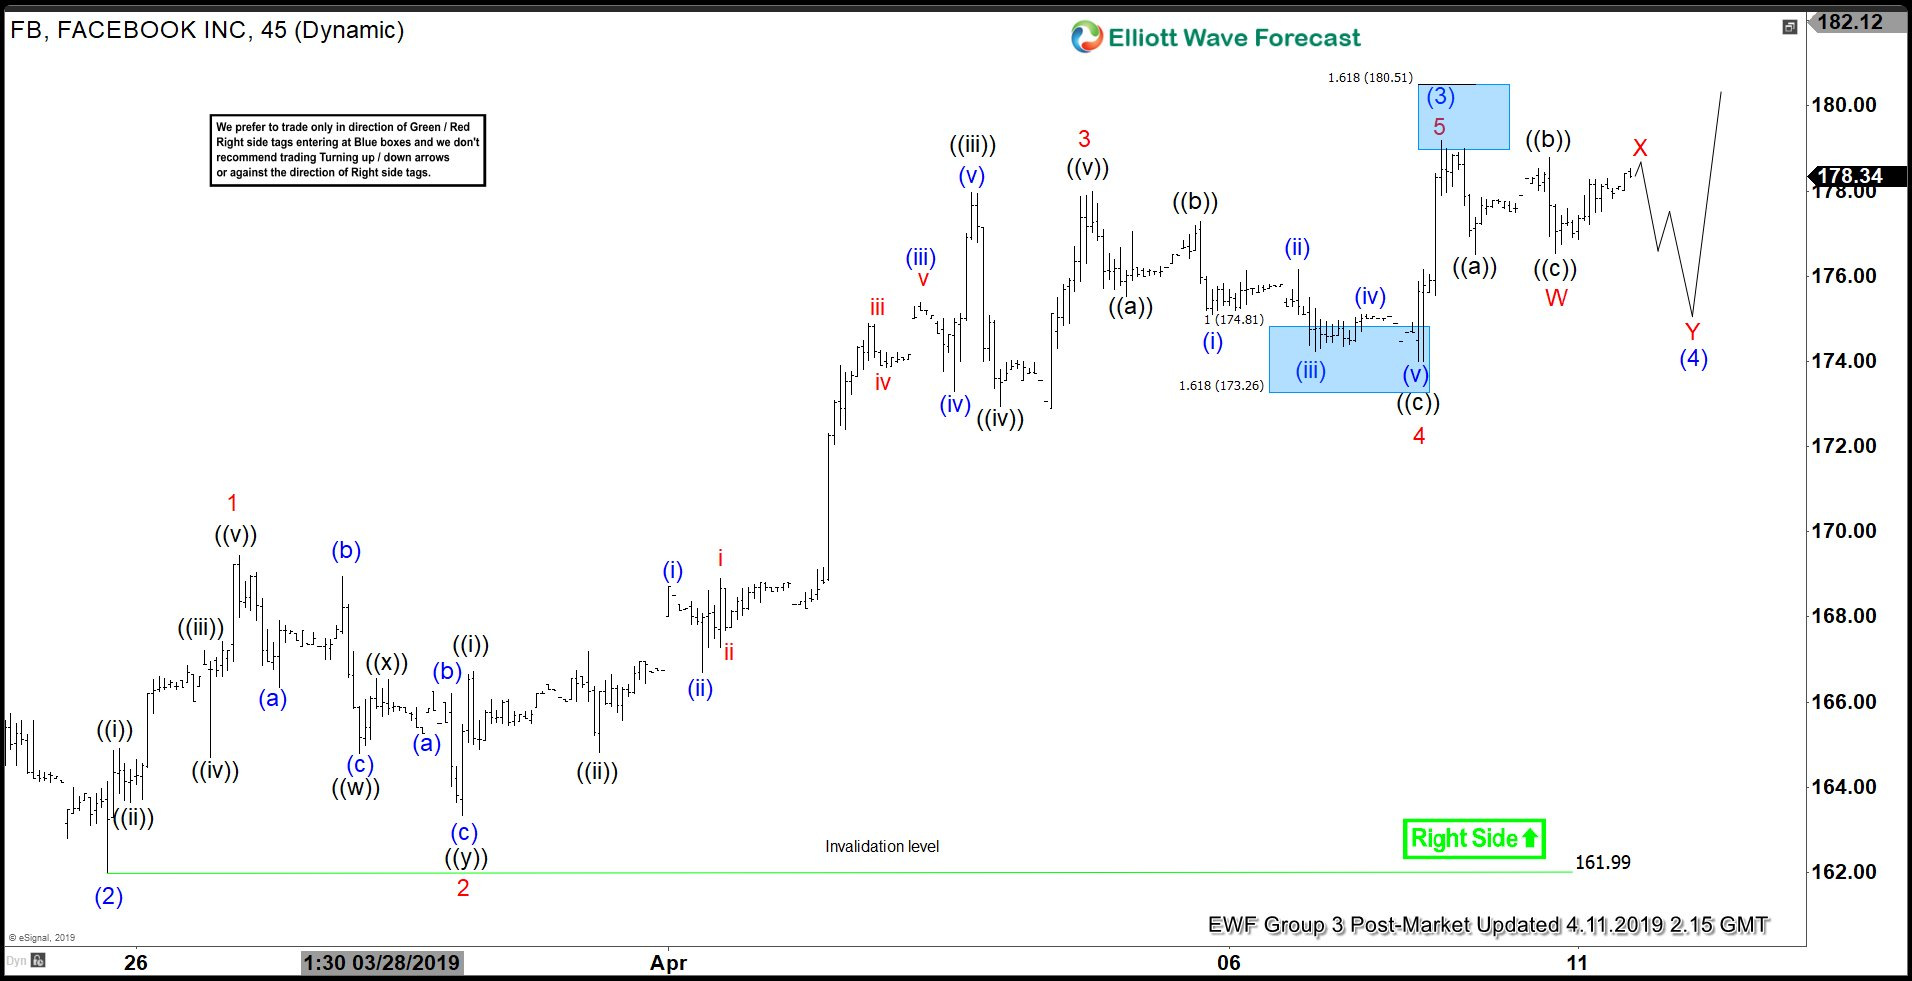 Elliott Wave View Favors More Upside in Facebook